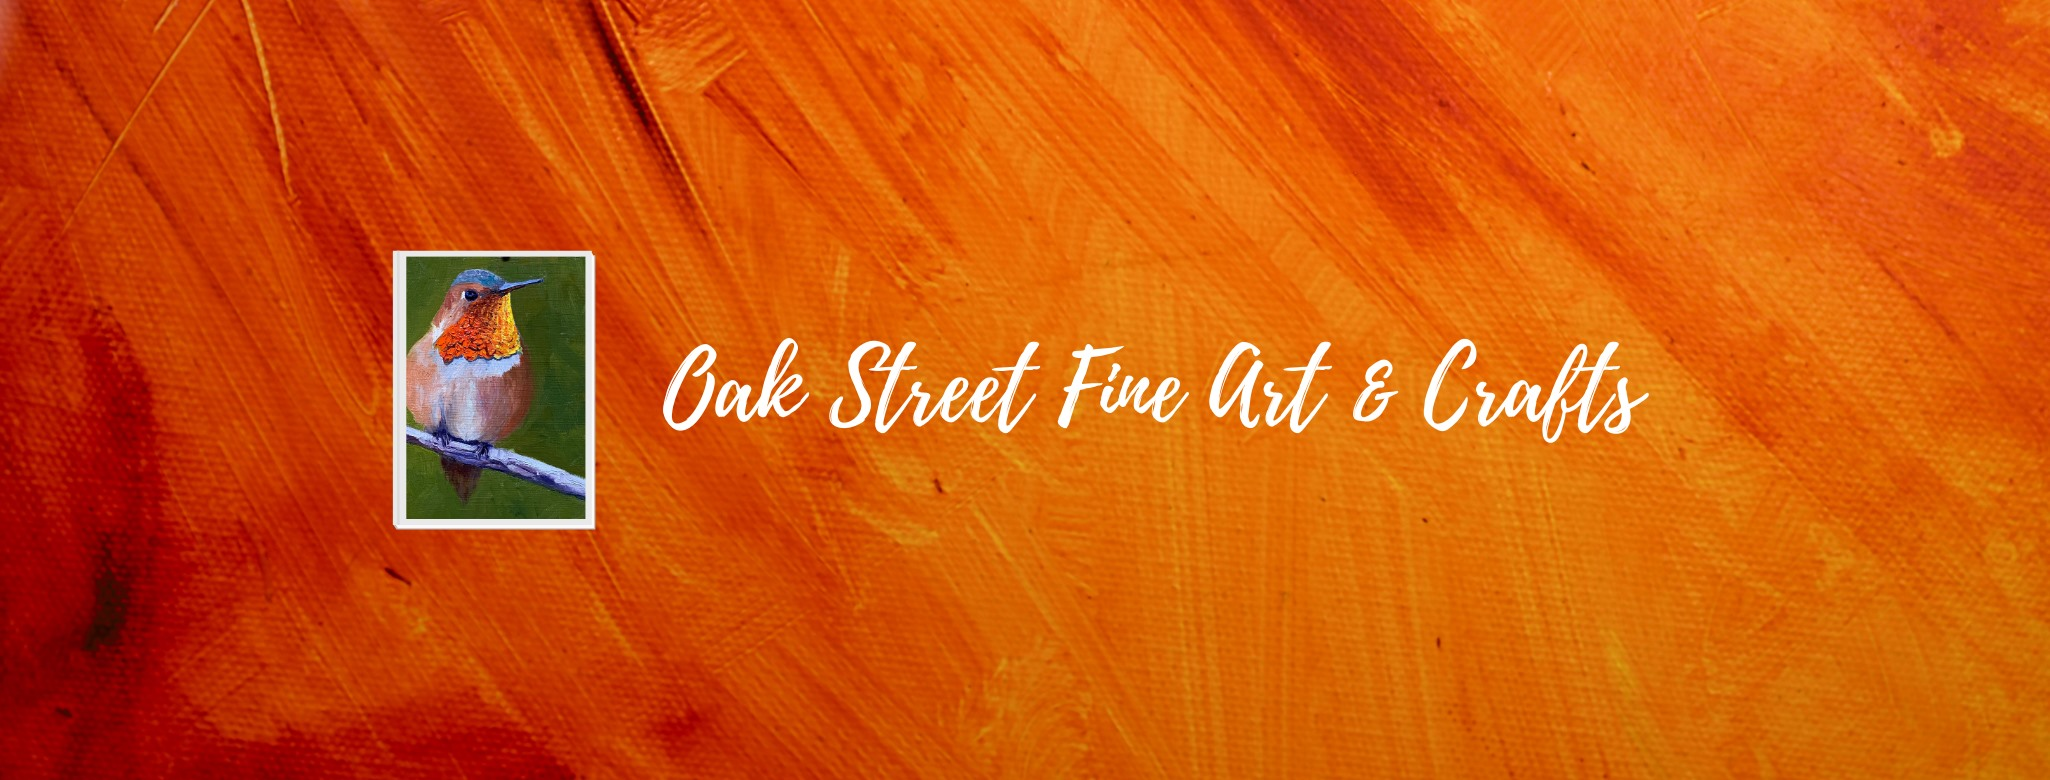 Oak Street Fine Arts & Crafts – Arts and crafts store, training and workshops